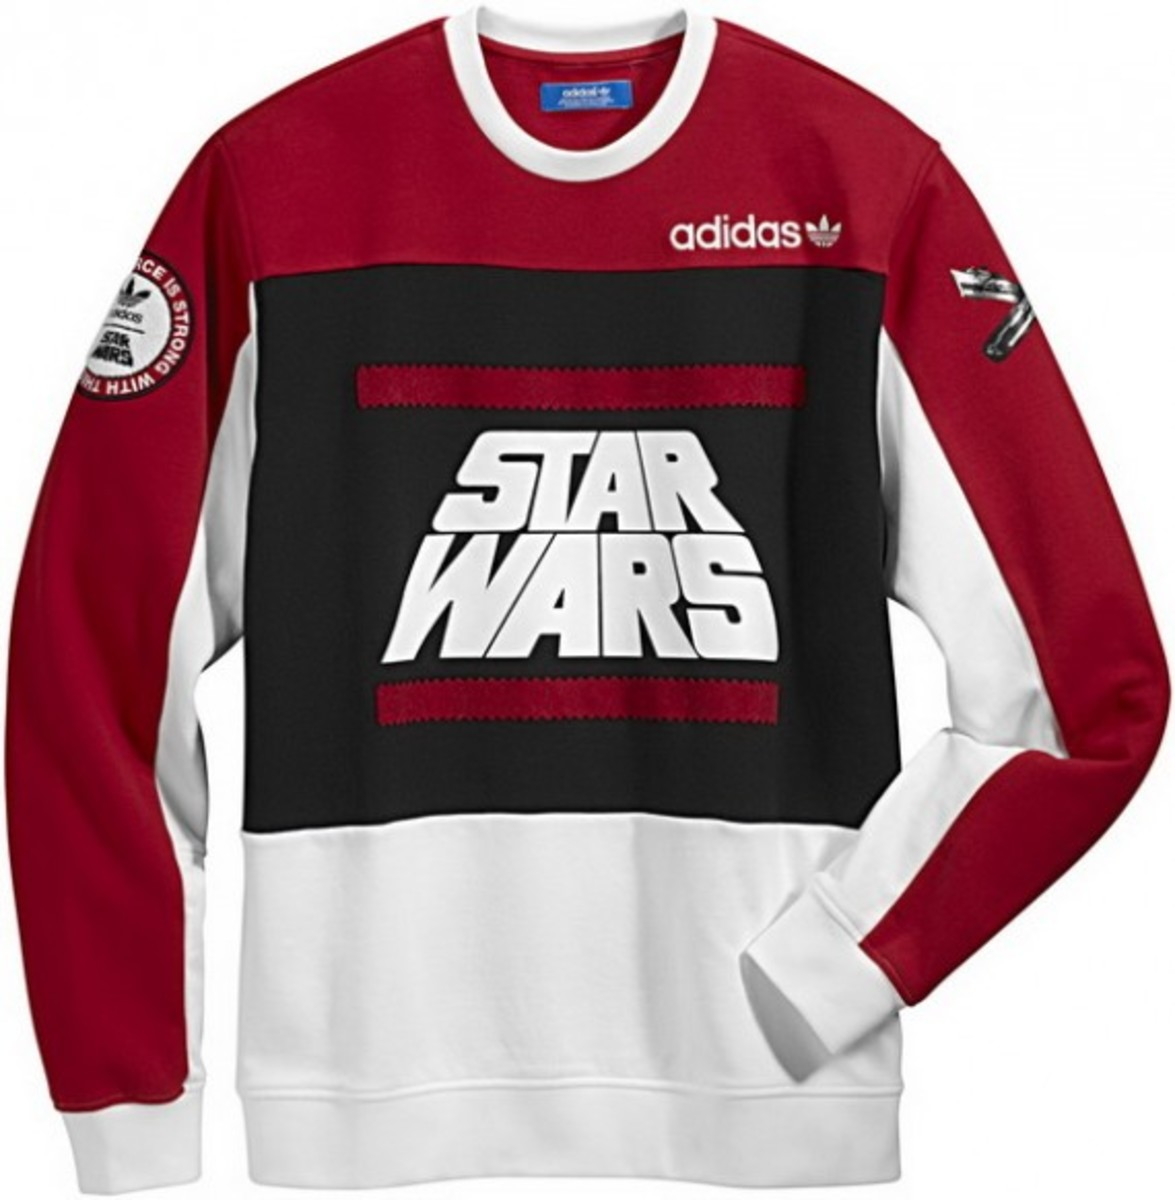 star-wars-adidas-originals-2011-apparel-26